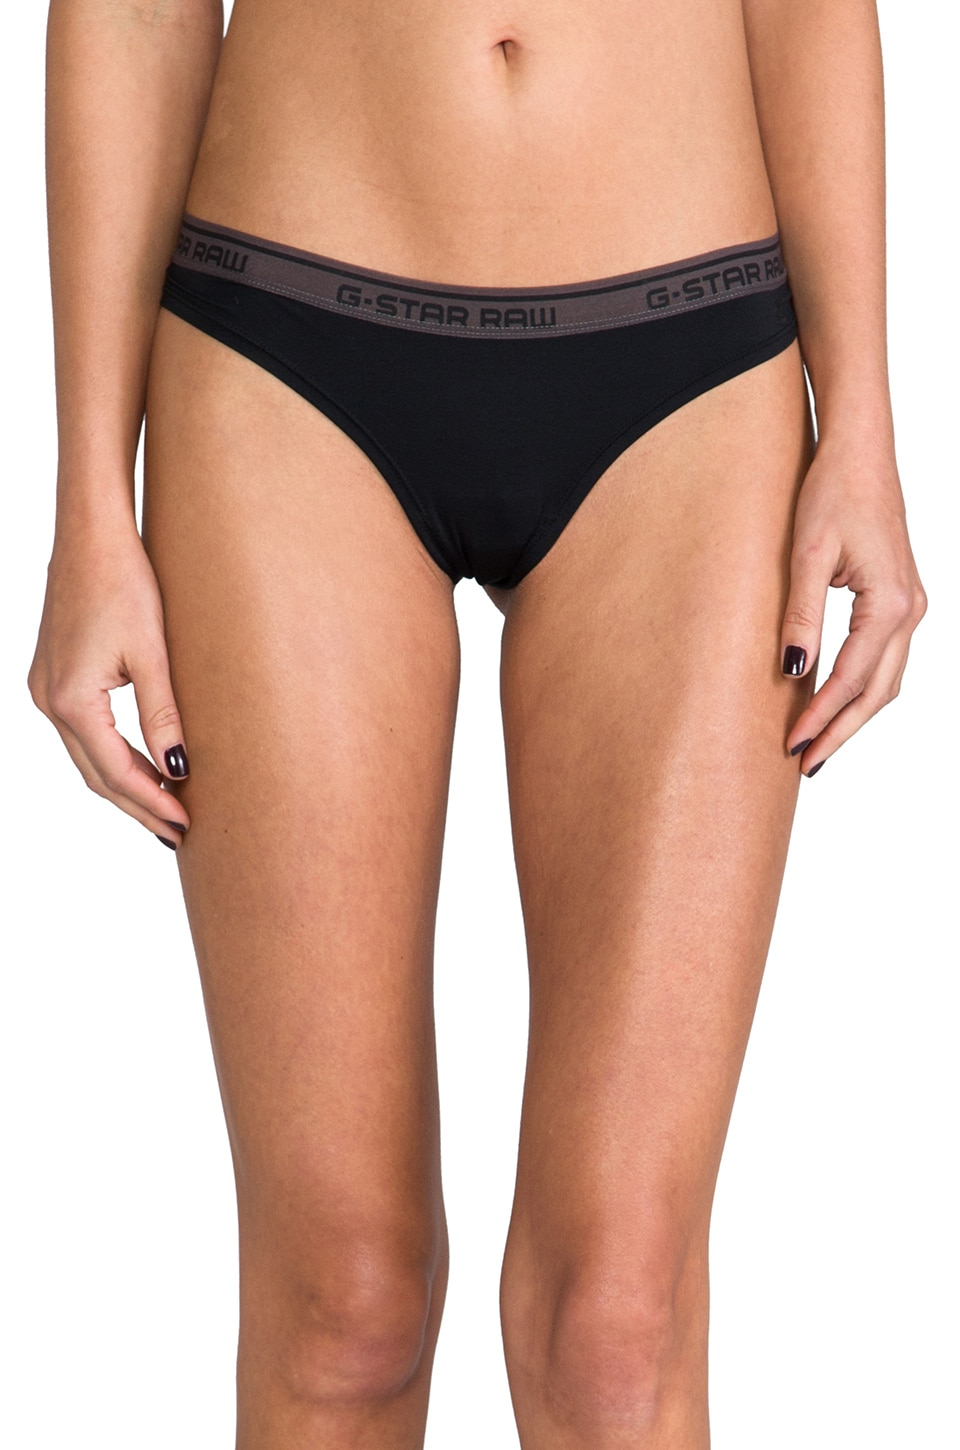 G-Star Thong Underwear in Black